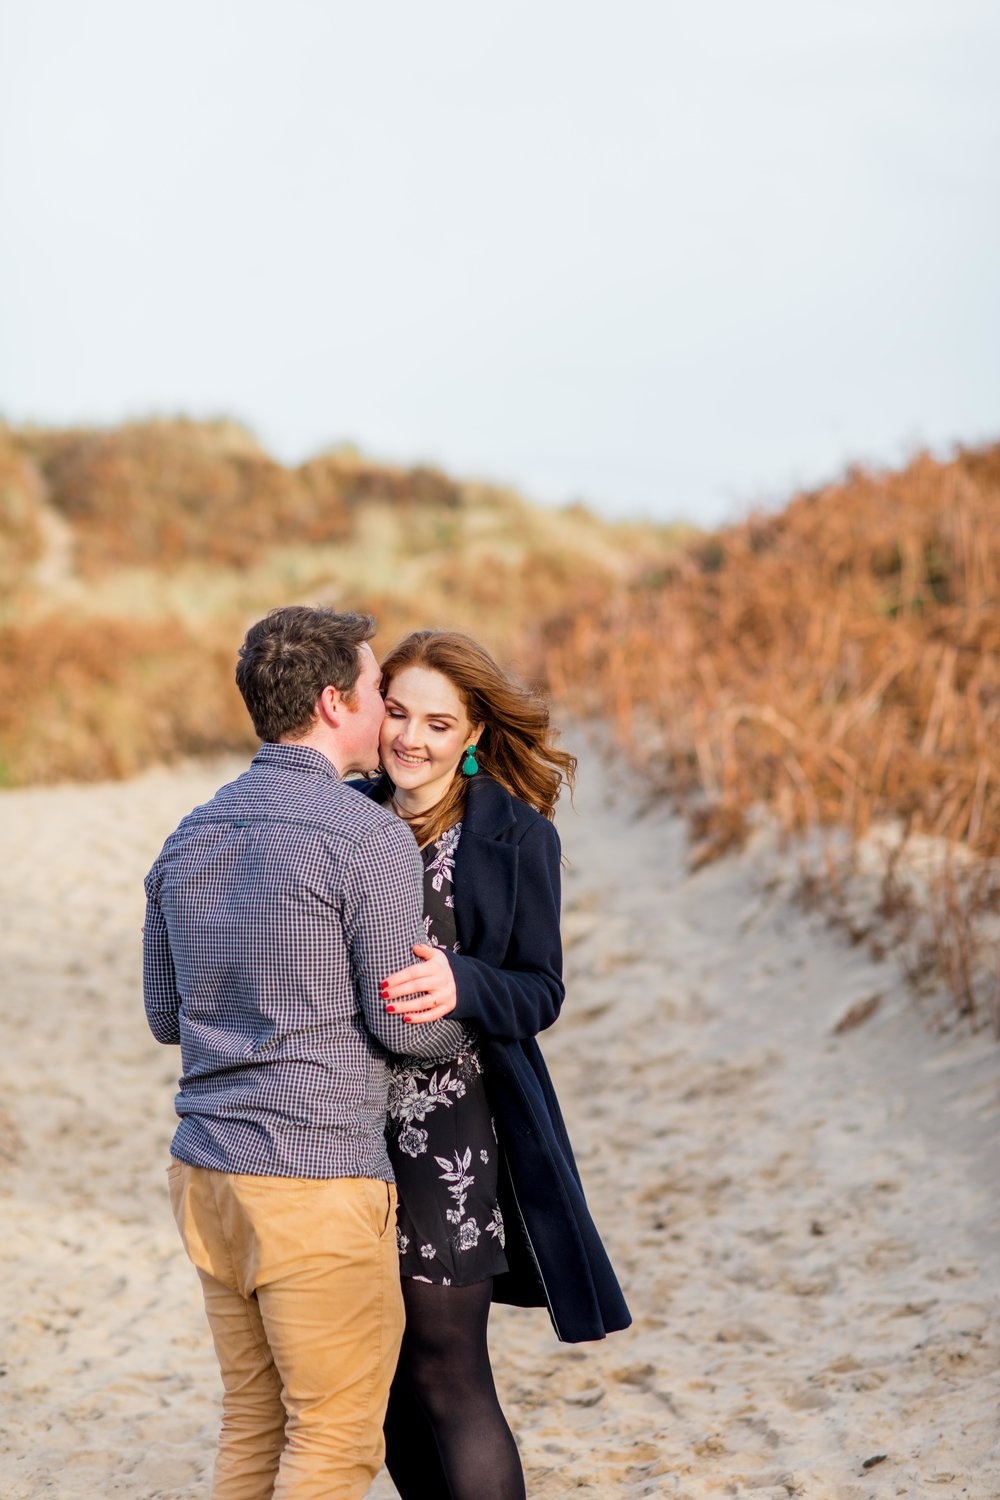 a couple posing for an engagement shoot wearing a black checkered shirt with khaki chinos and a knee length black dress with white flowers and green earings